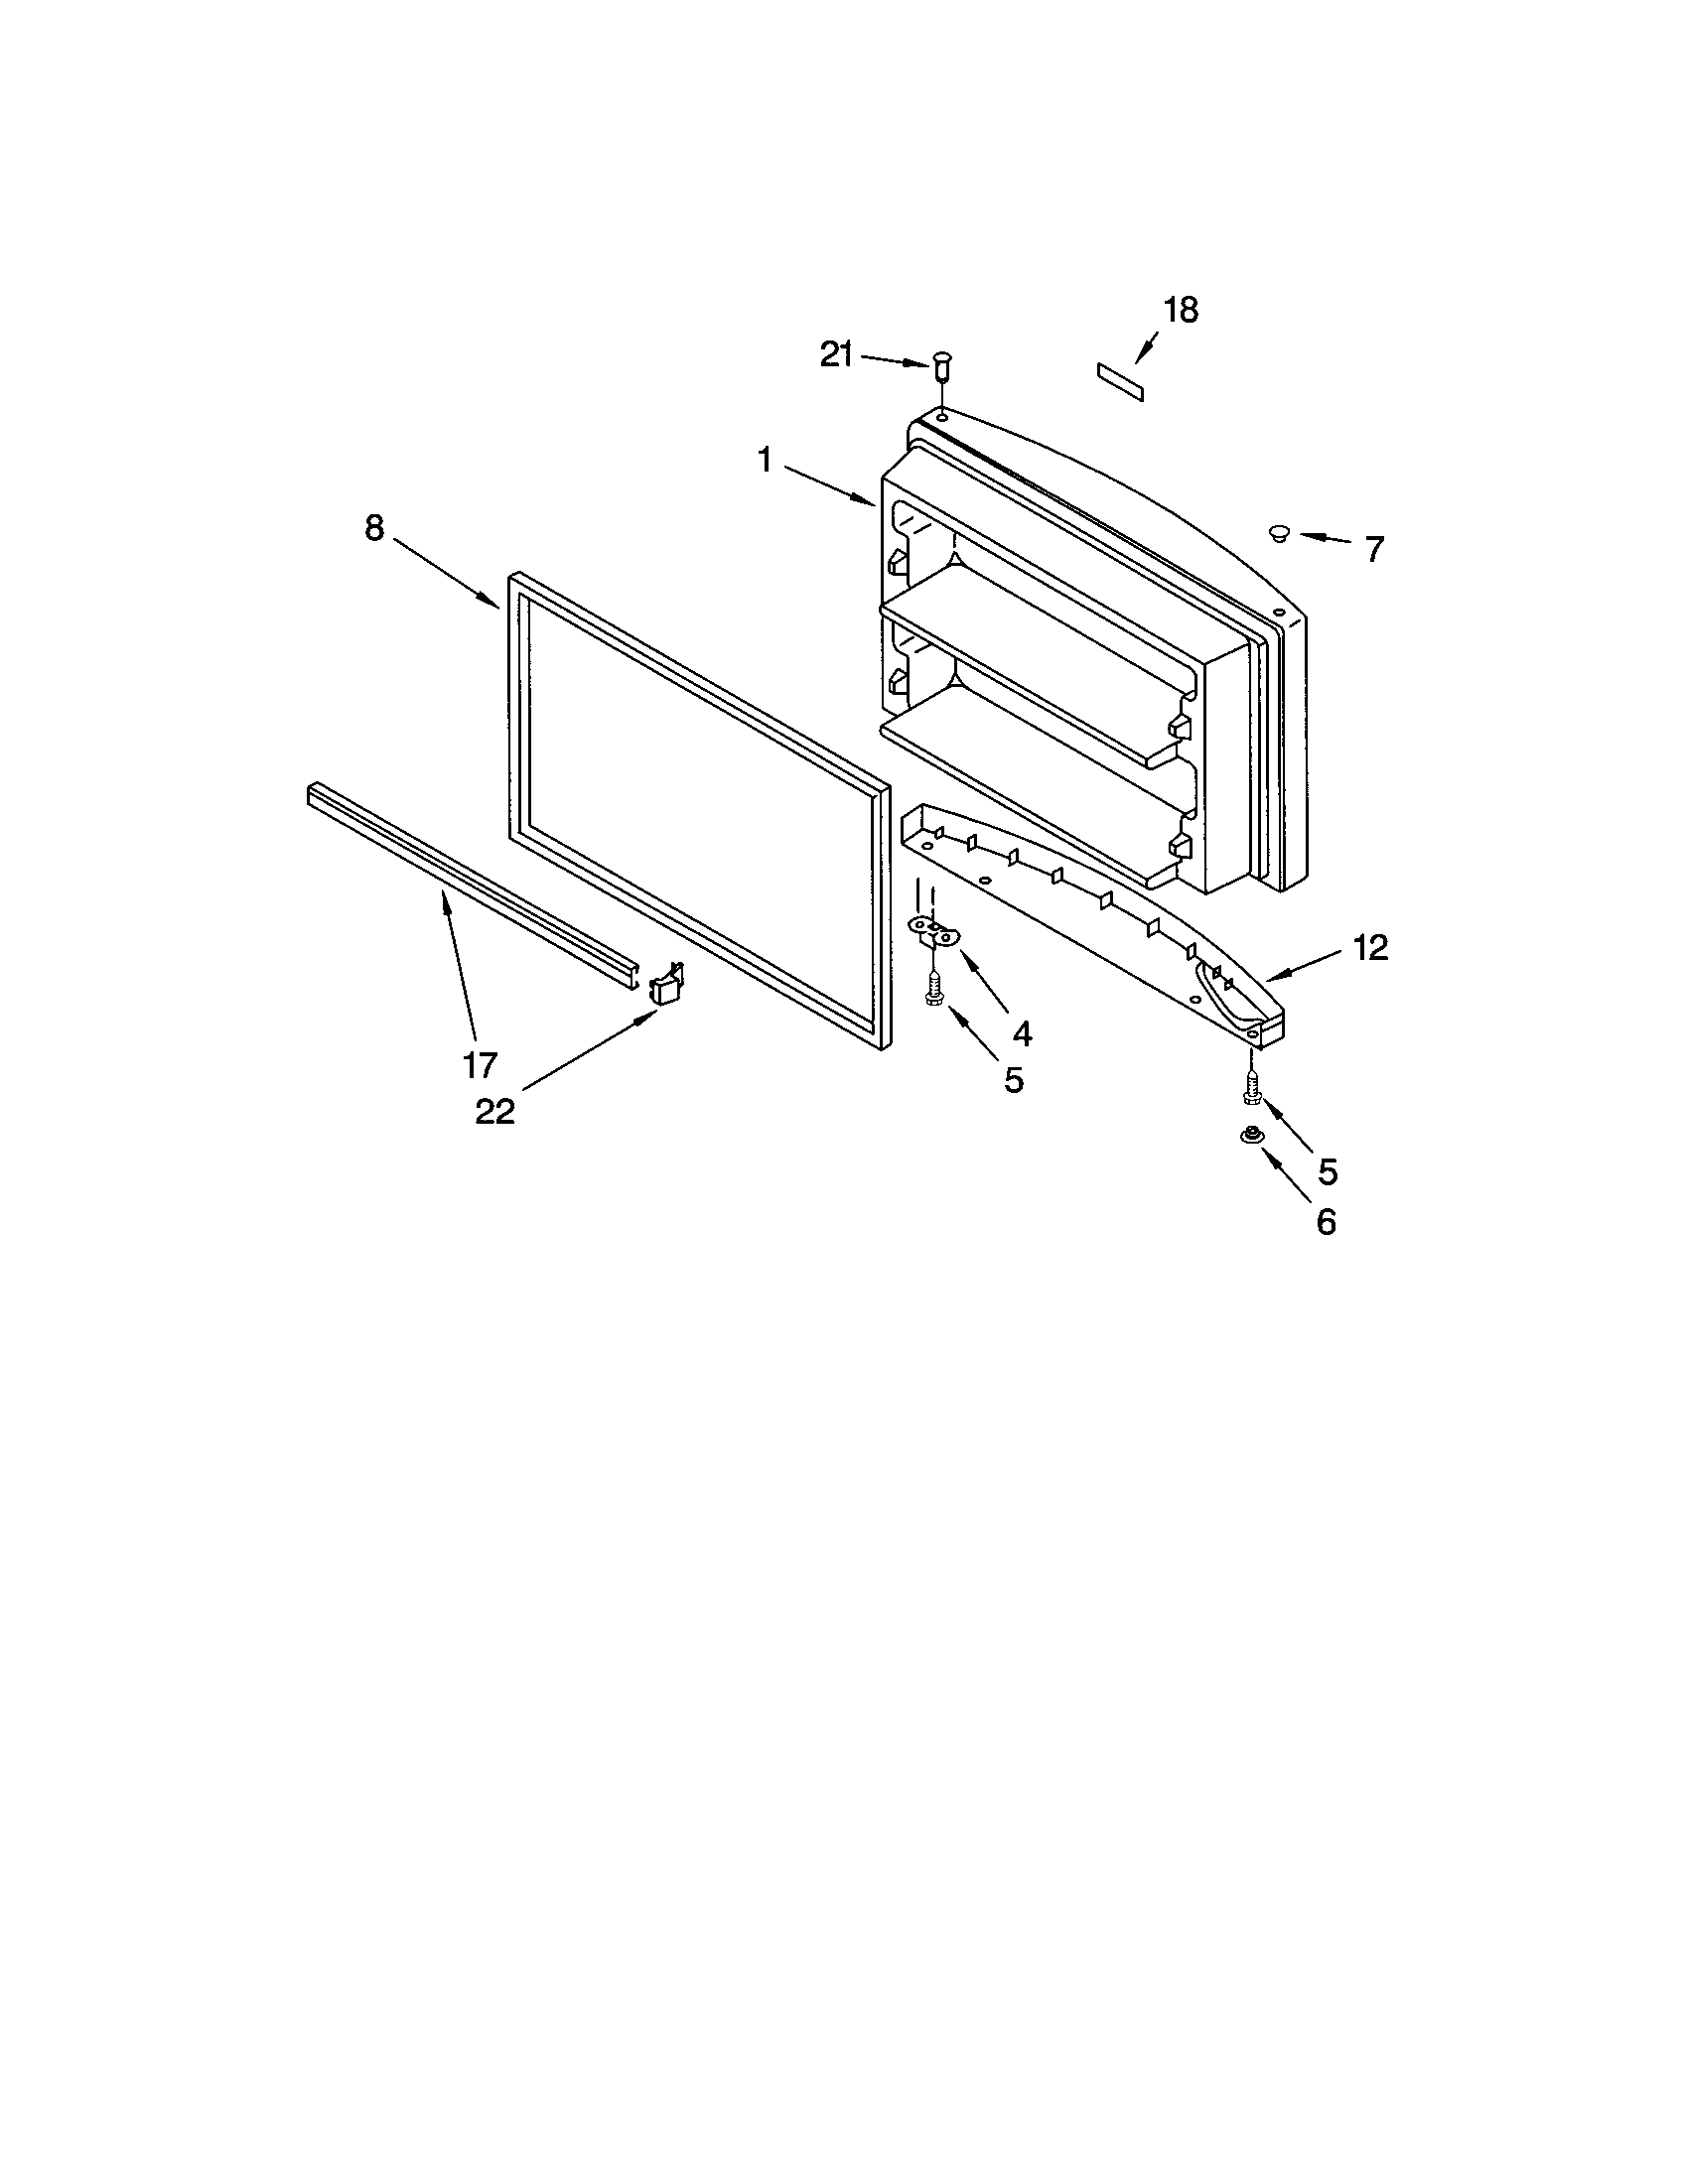 Kenmore 10672993201 freezer door diagram